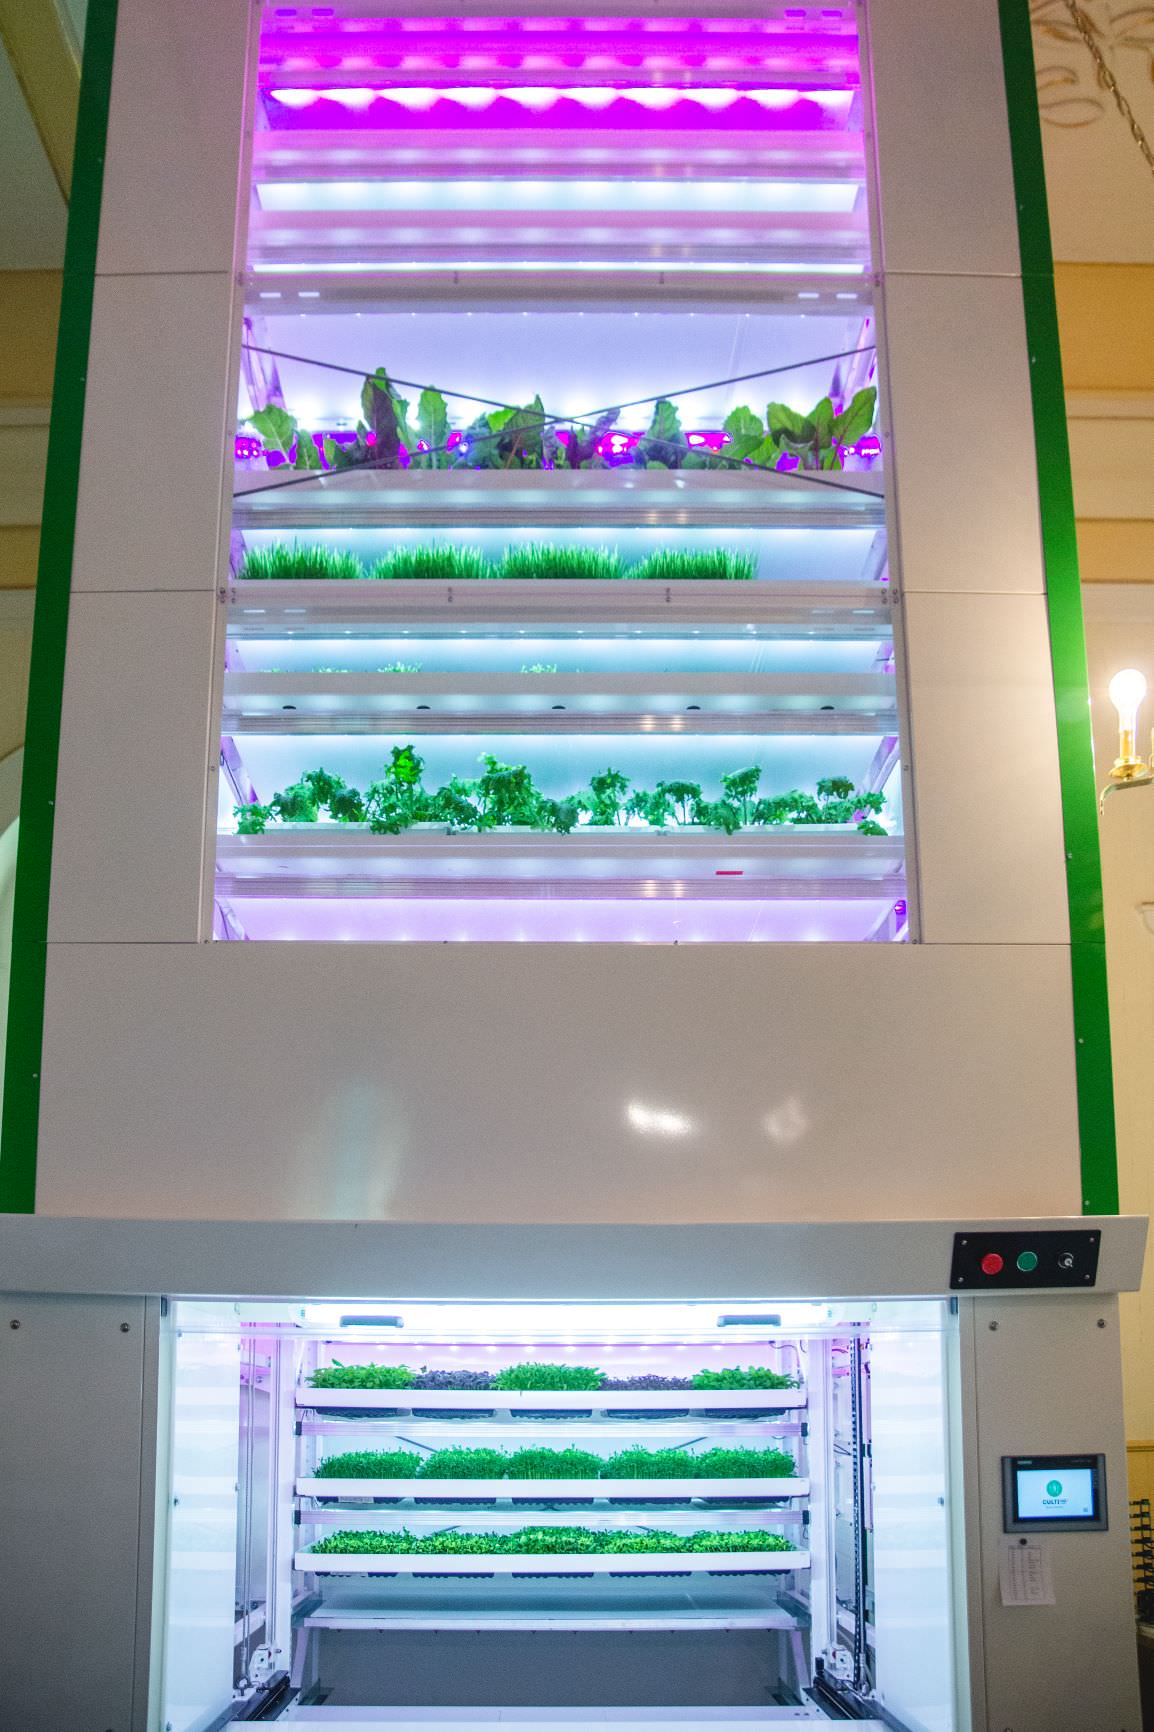 Gallery Next-Generation Vertical Farming 3